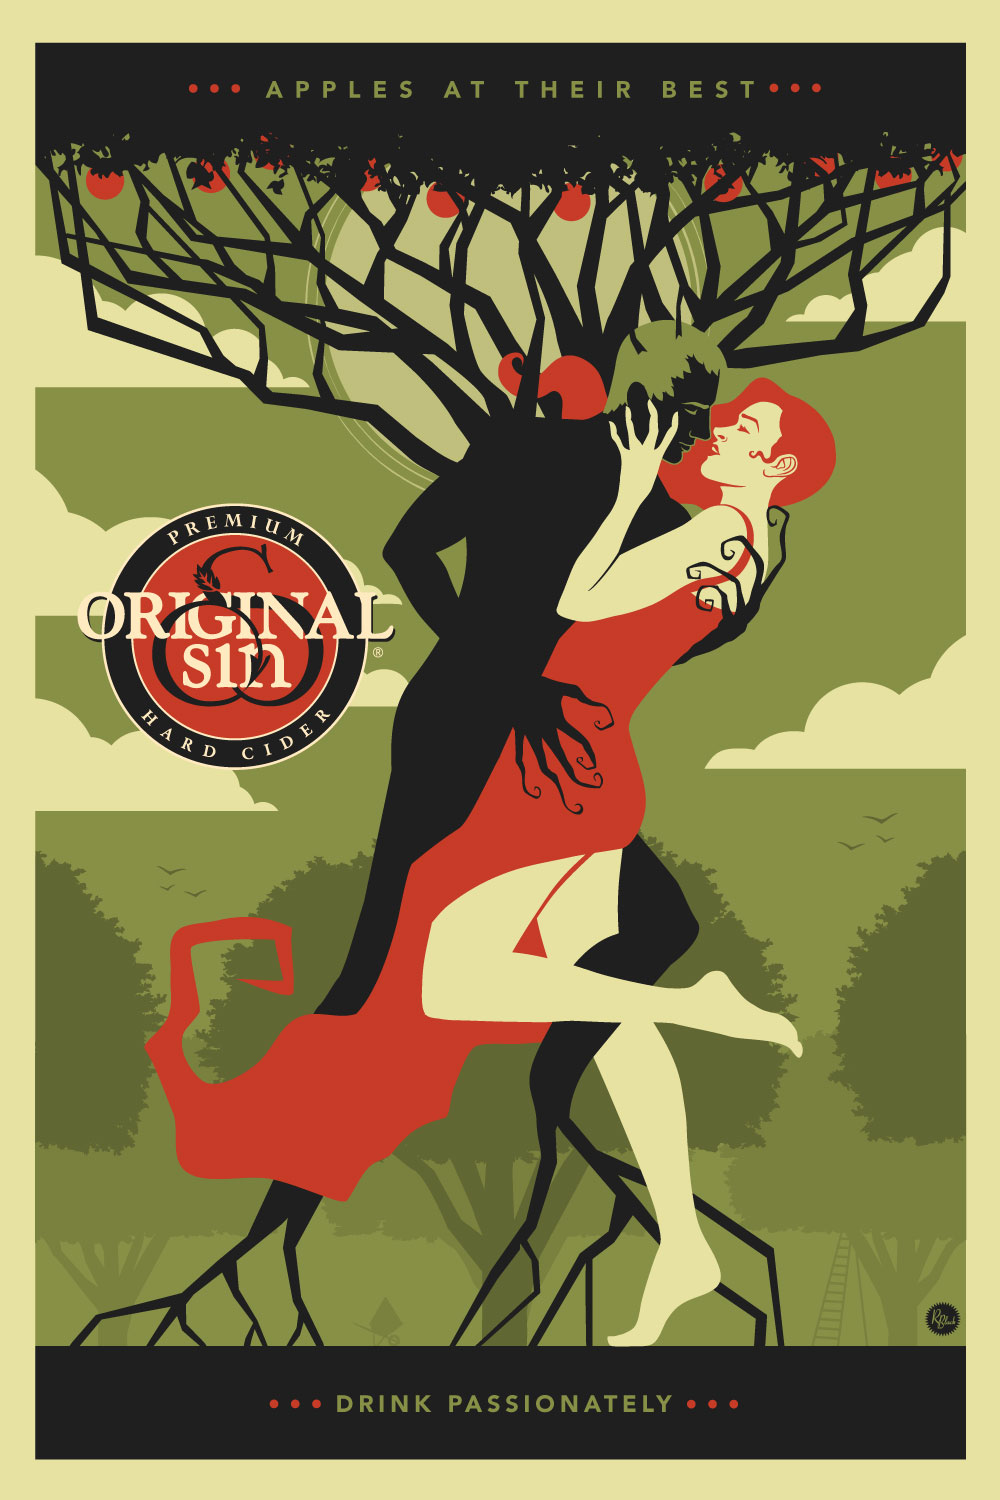 Cherry Tree Original Sin Hard Cider